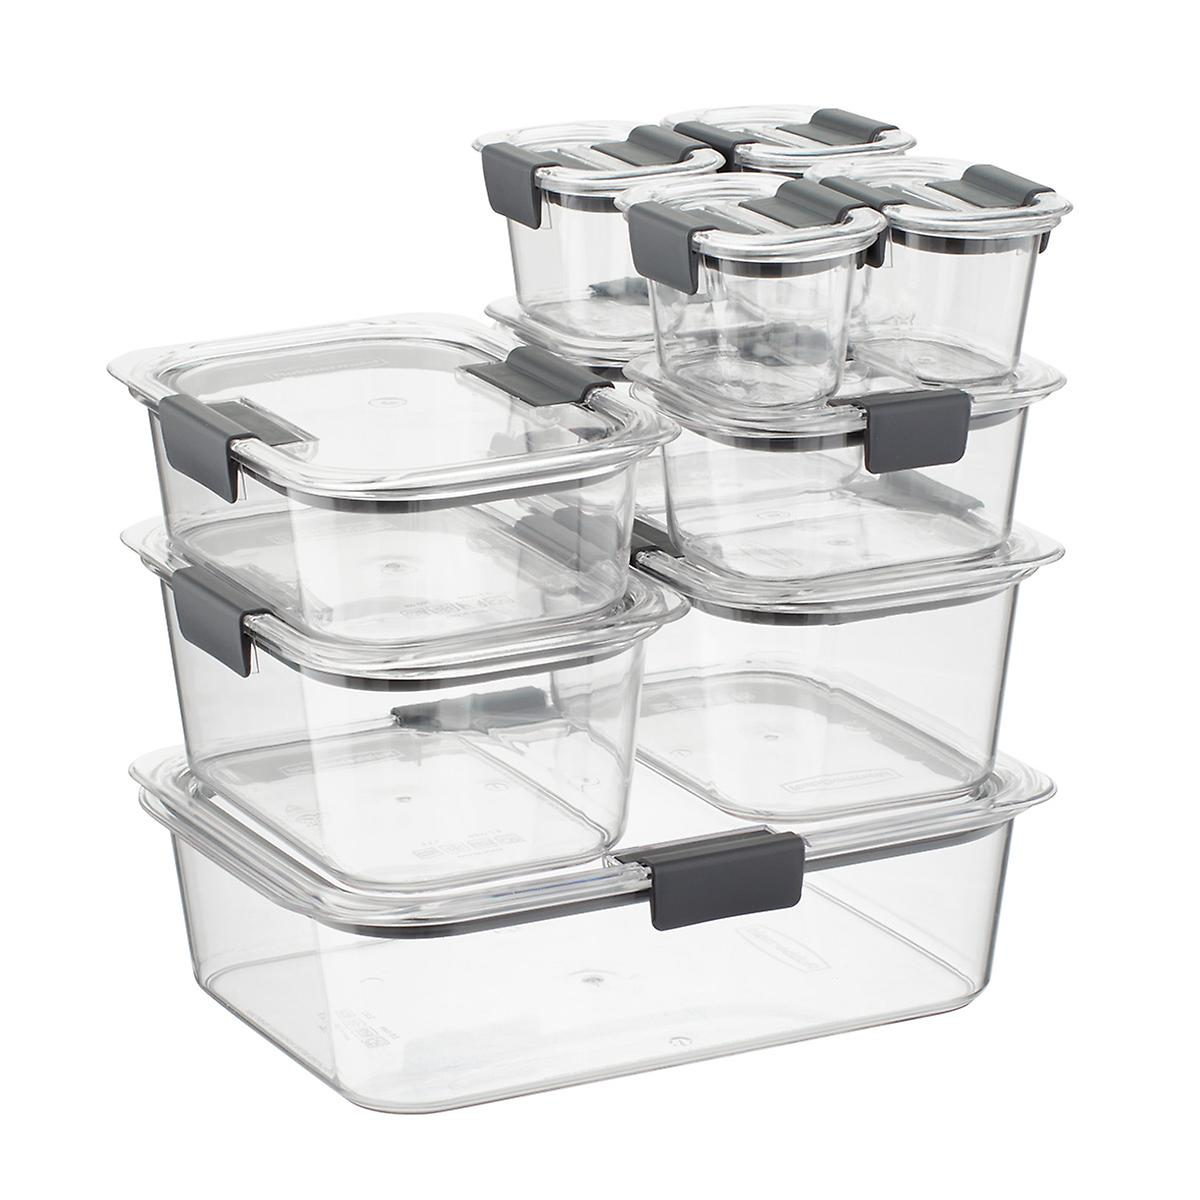 Rubbermaid Brilliance Food Storage Containers Set Of 20 The